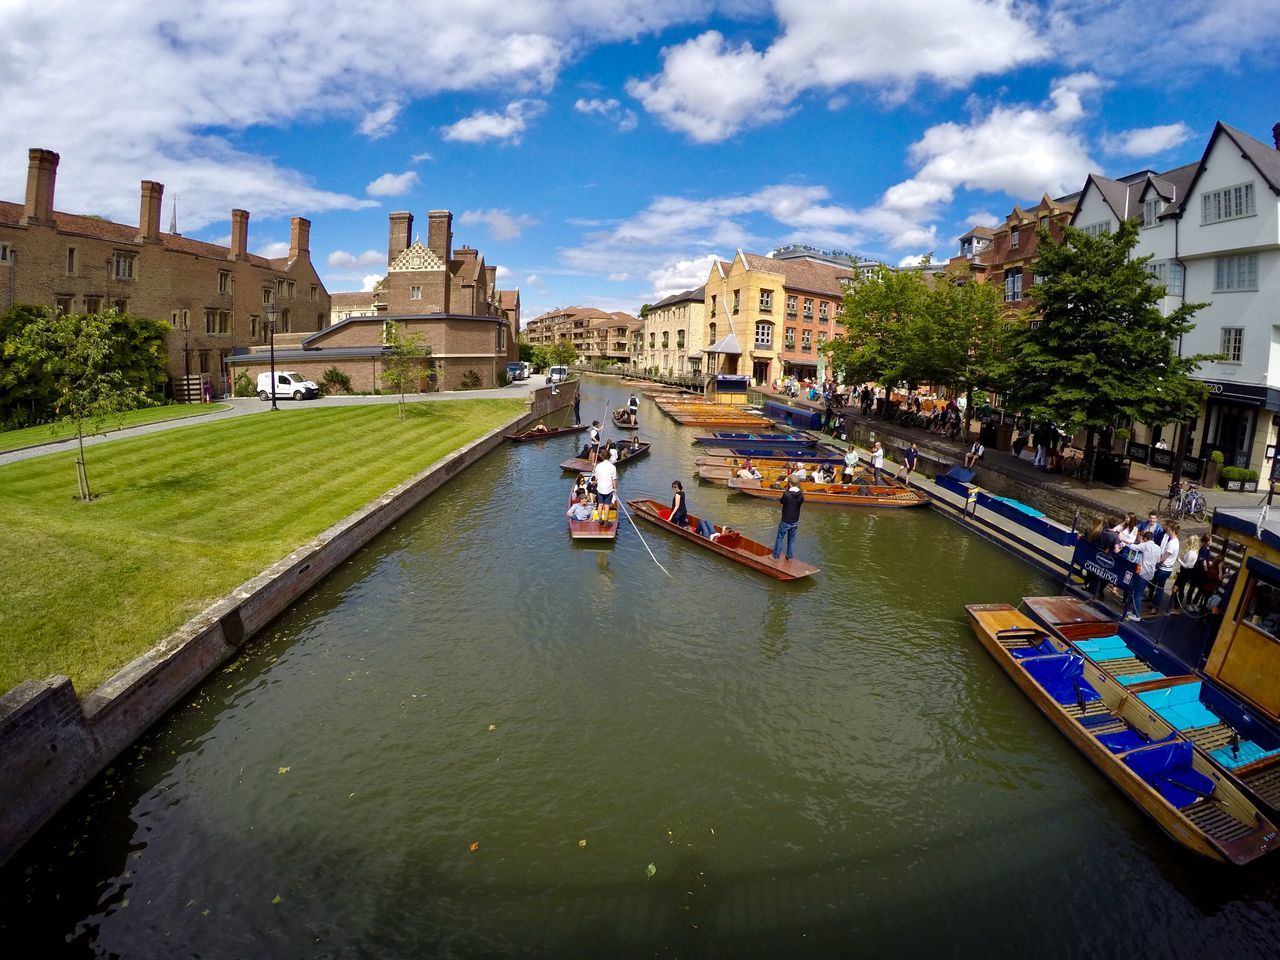 Adult Adults Only Architecture Building Exterior Cambridge City City Break City Life Colors Day England Large Group Of People Leisure Activity Nautical Vessel Outdoors People Sky Students Travel Travel Destinations Tree Vacations Water Waterfront Women